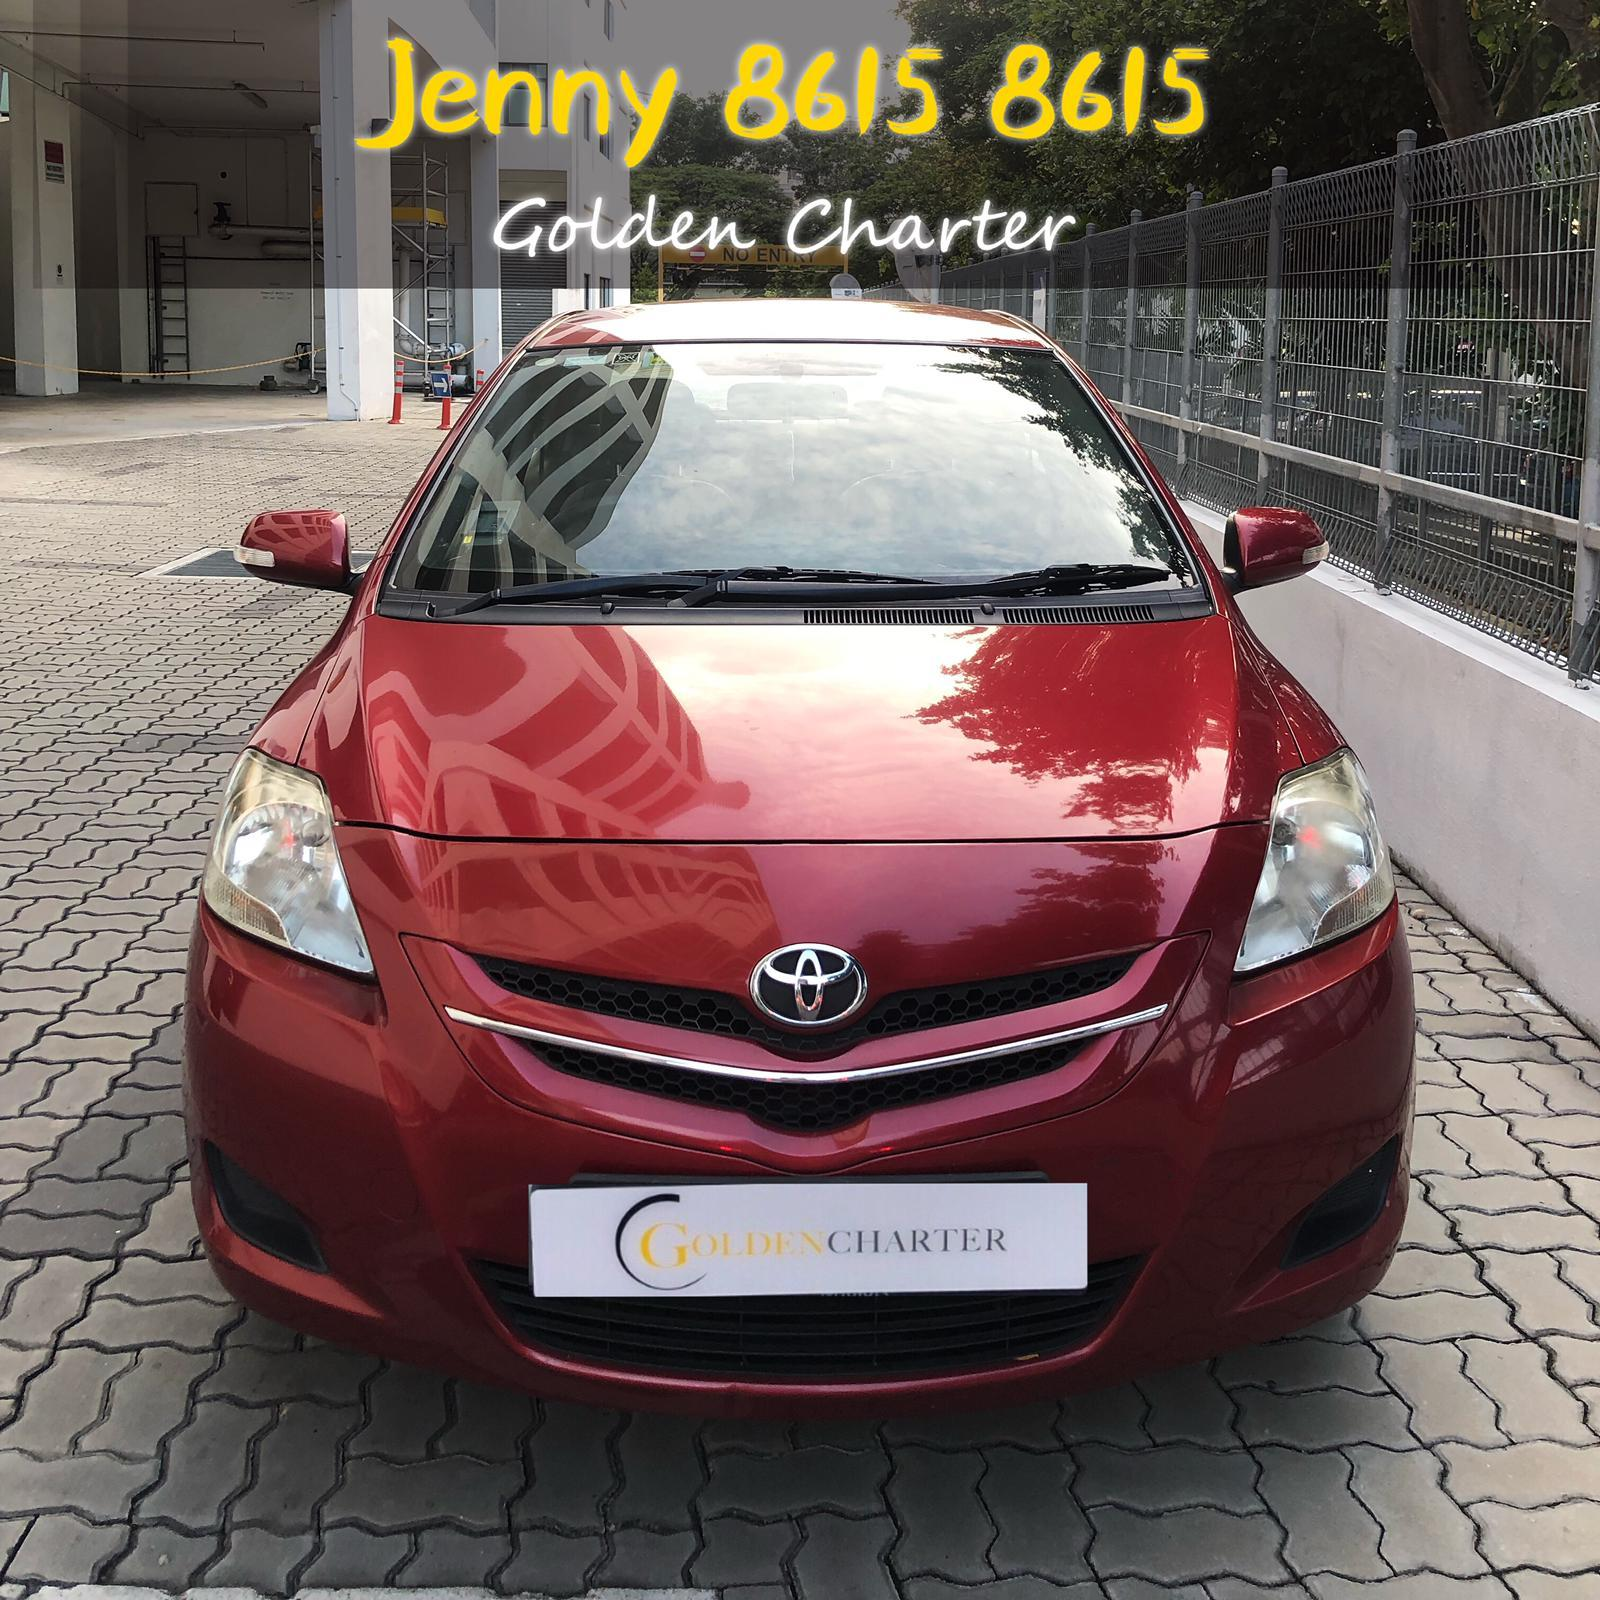 Toyota Vios 1.6a Go-jek grab personal use cheap car for rent rental promo